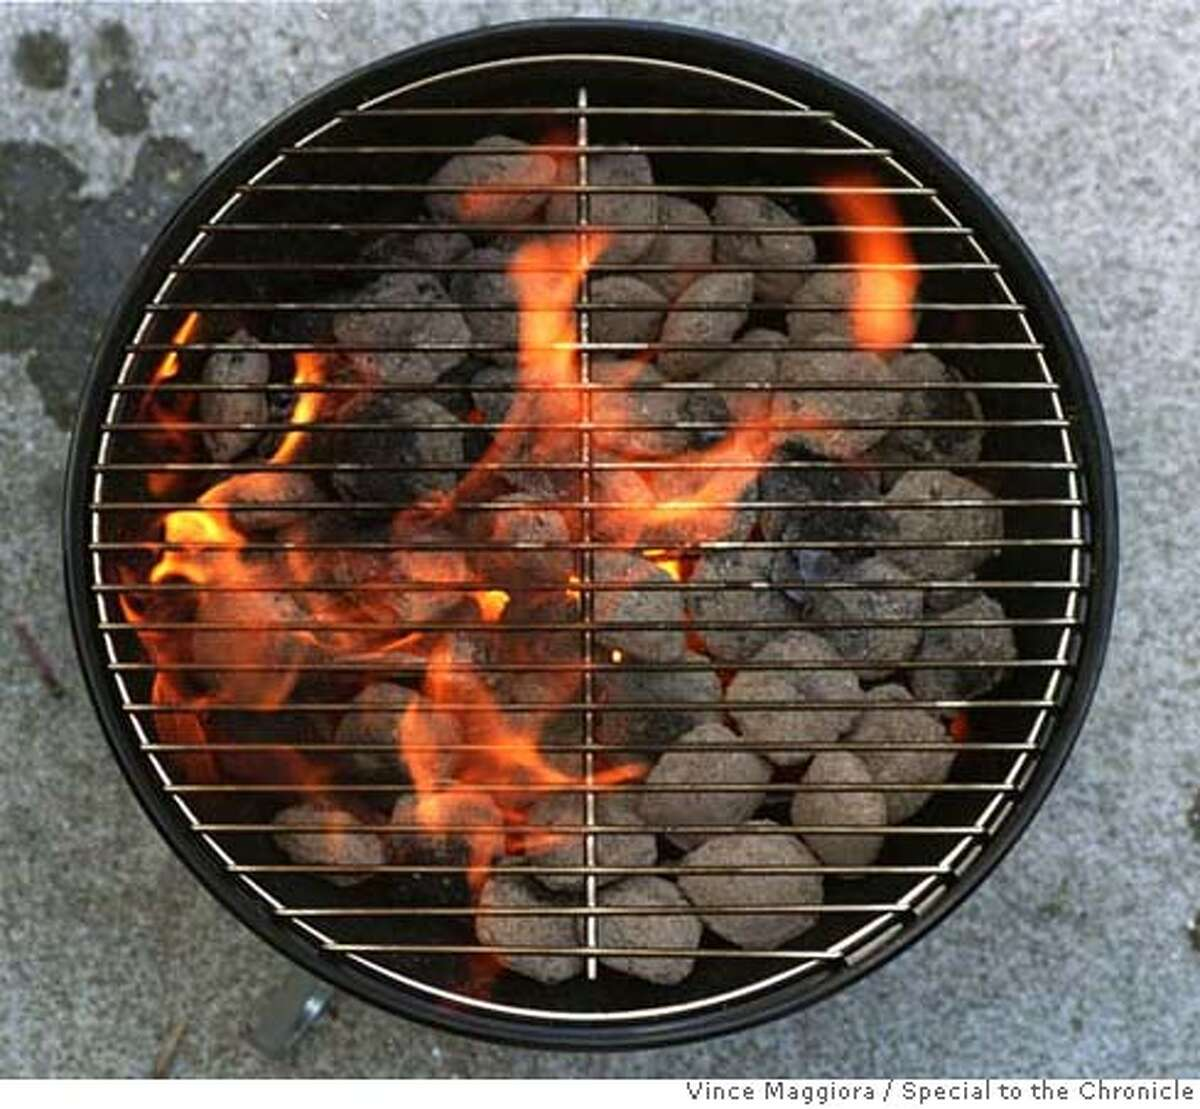 BARBEQUE GRILL - BBQ. by Vince Maggiora/CHRONICLE